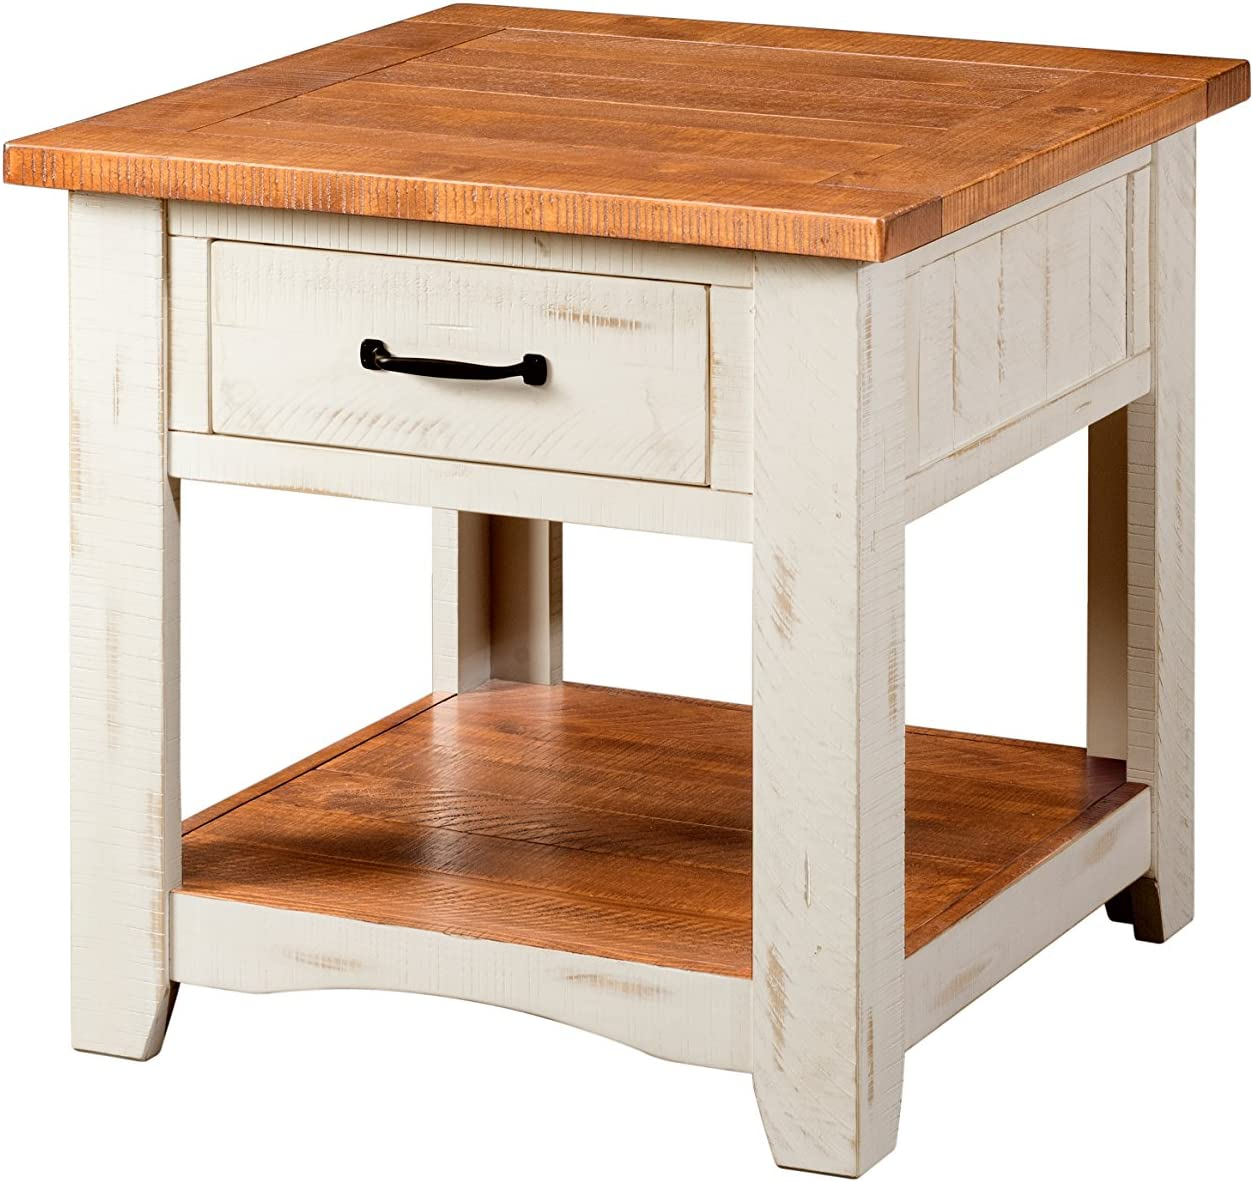 Martin Svensson Home Rustic End Table, Antique White and Honey Tobacco